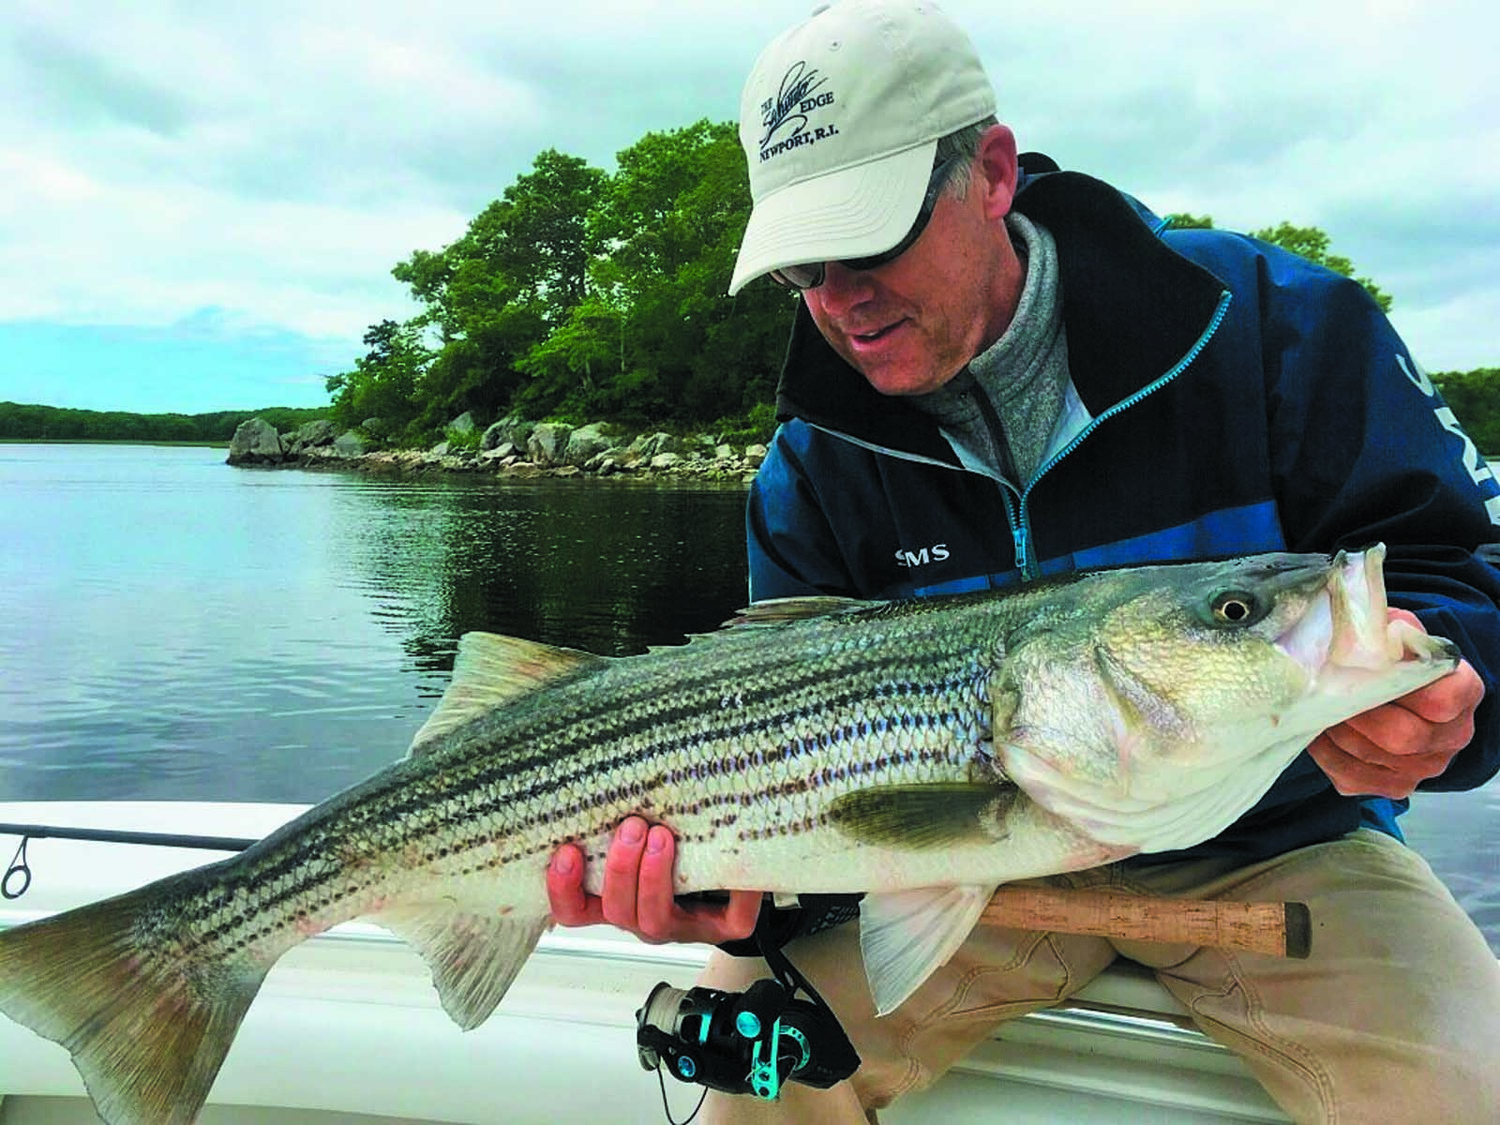 WEIGHING IN ON STRIPED BASS:  Peter Jenkins, chairman of the board of the American Saltwater Guides Association and owner of the Saltwater Edge, Middletown, RI was one of several recreational fishing community leaders speaking up for striped bass conservation last week.